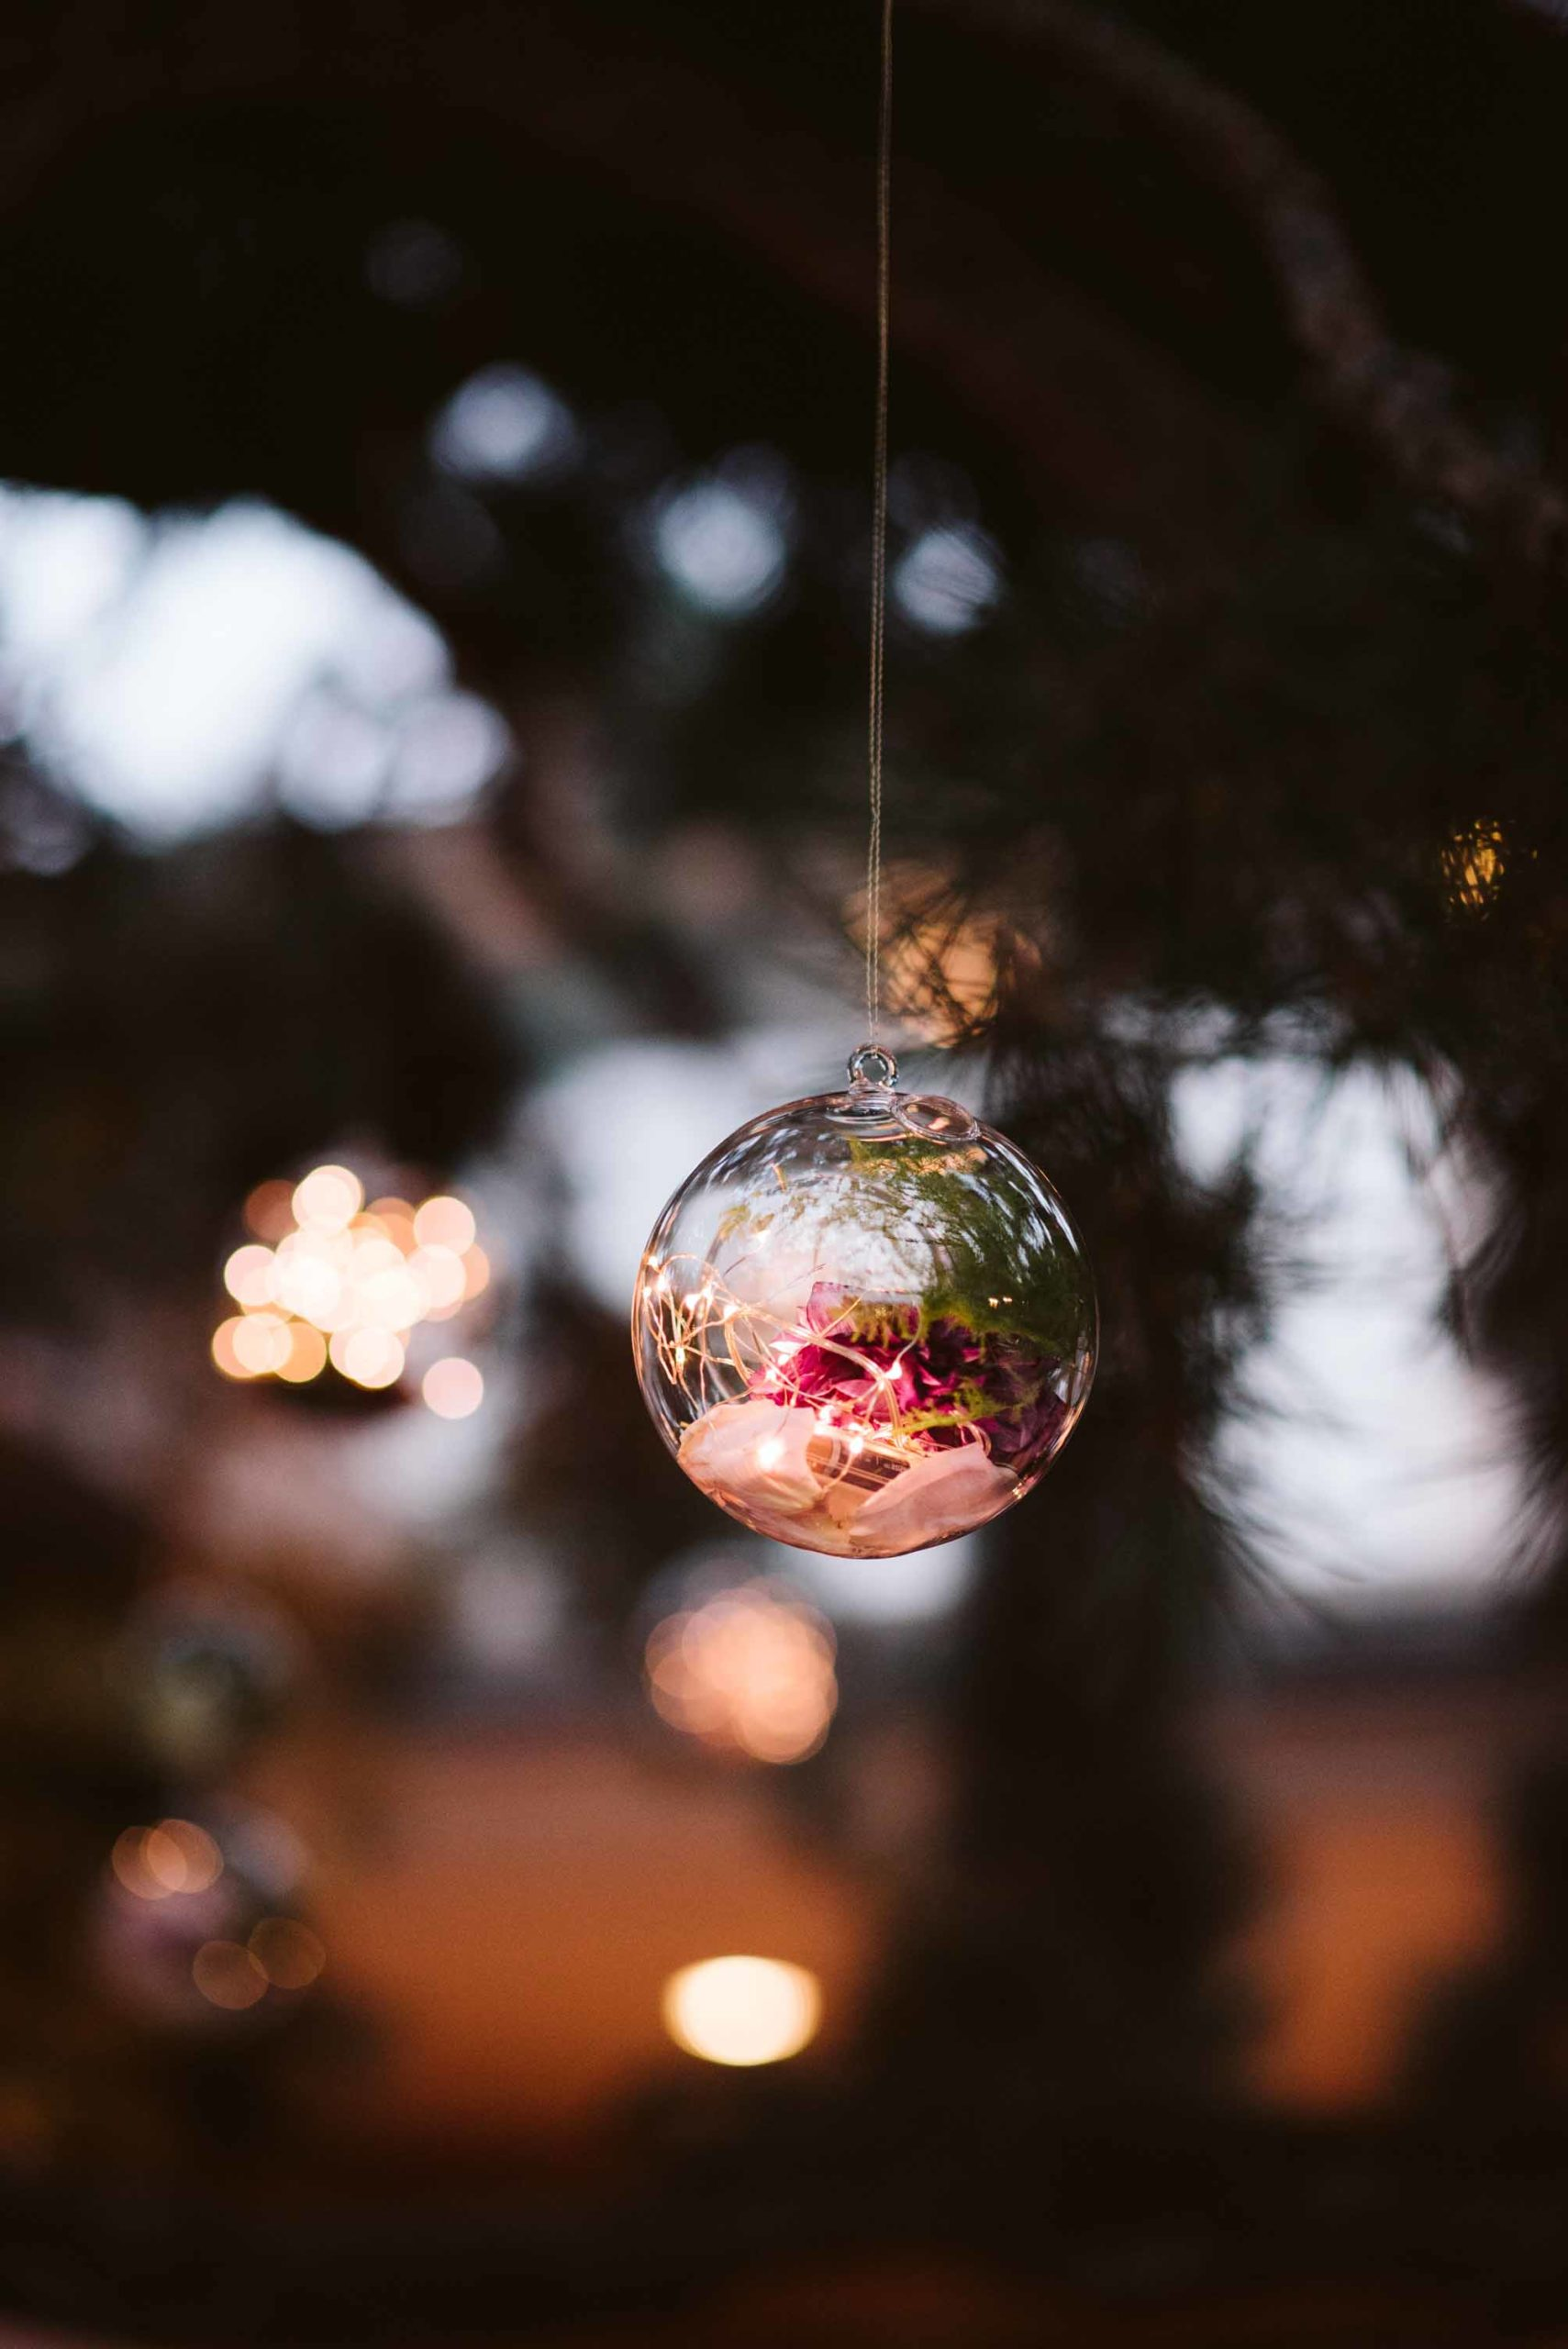 Round glass globes filled with fairy lights and roses suspended in a tree